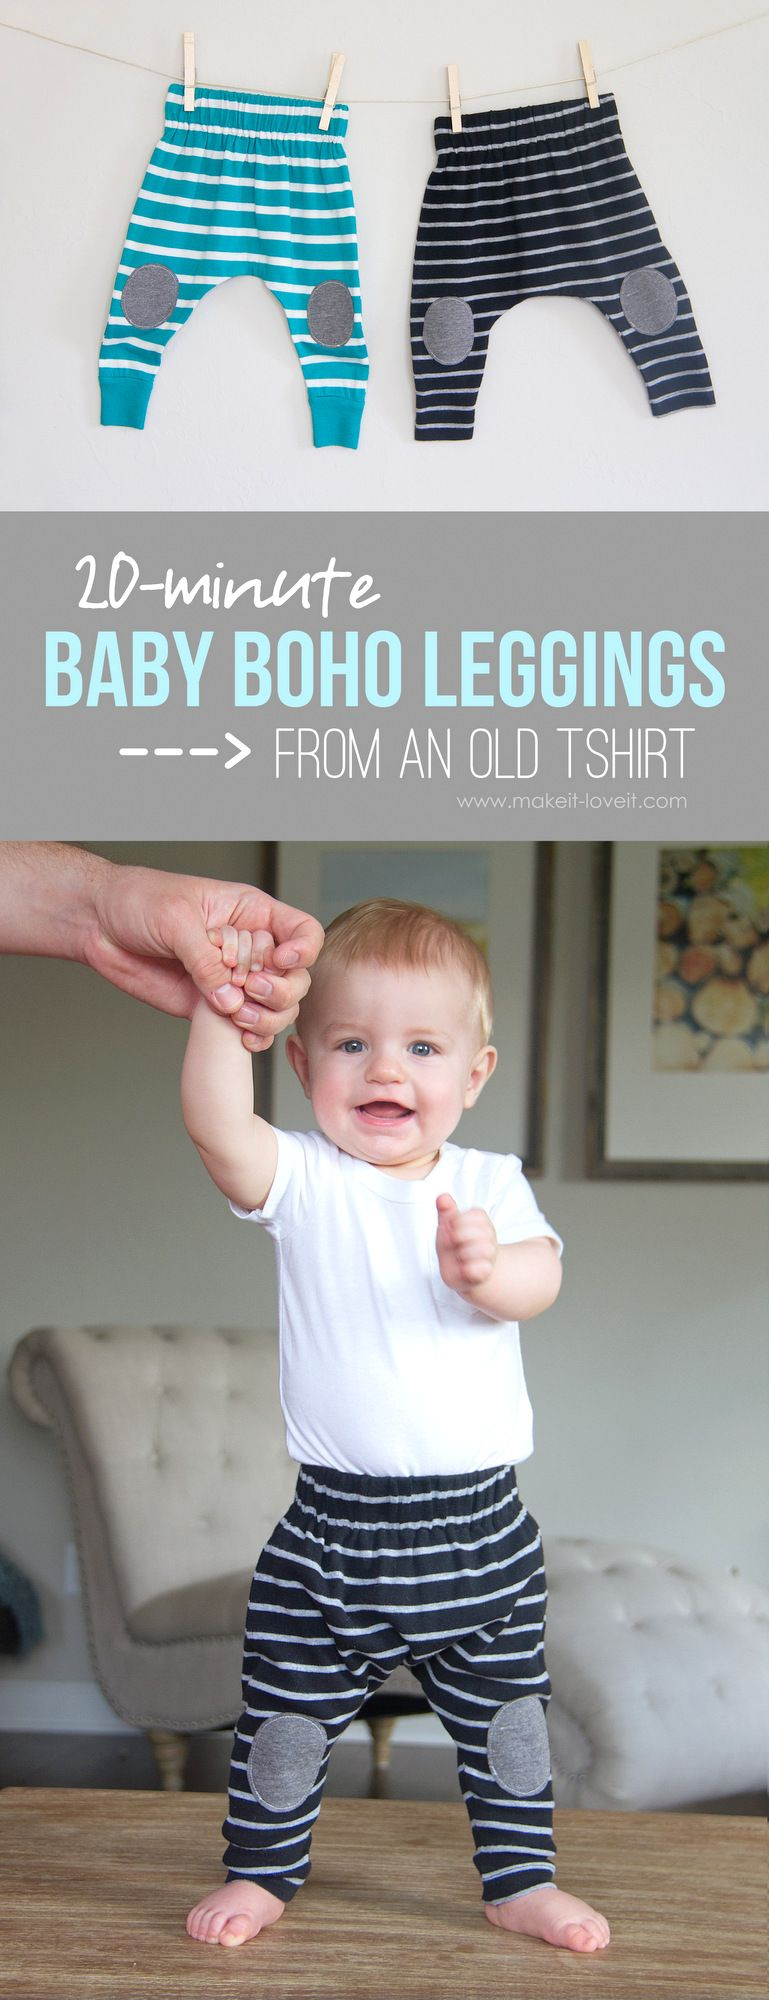 e88cae87bc31e Simple 20-minute Baby Boho Leggings (...from an old Tshirt)!! | via Make It  and Love It